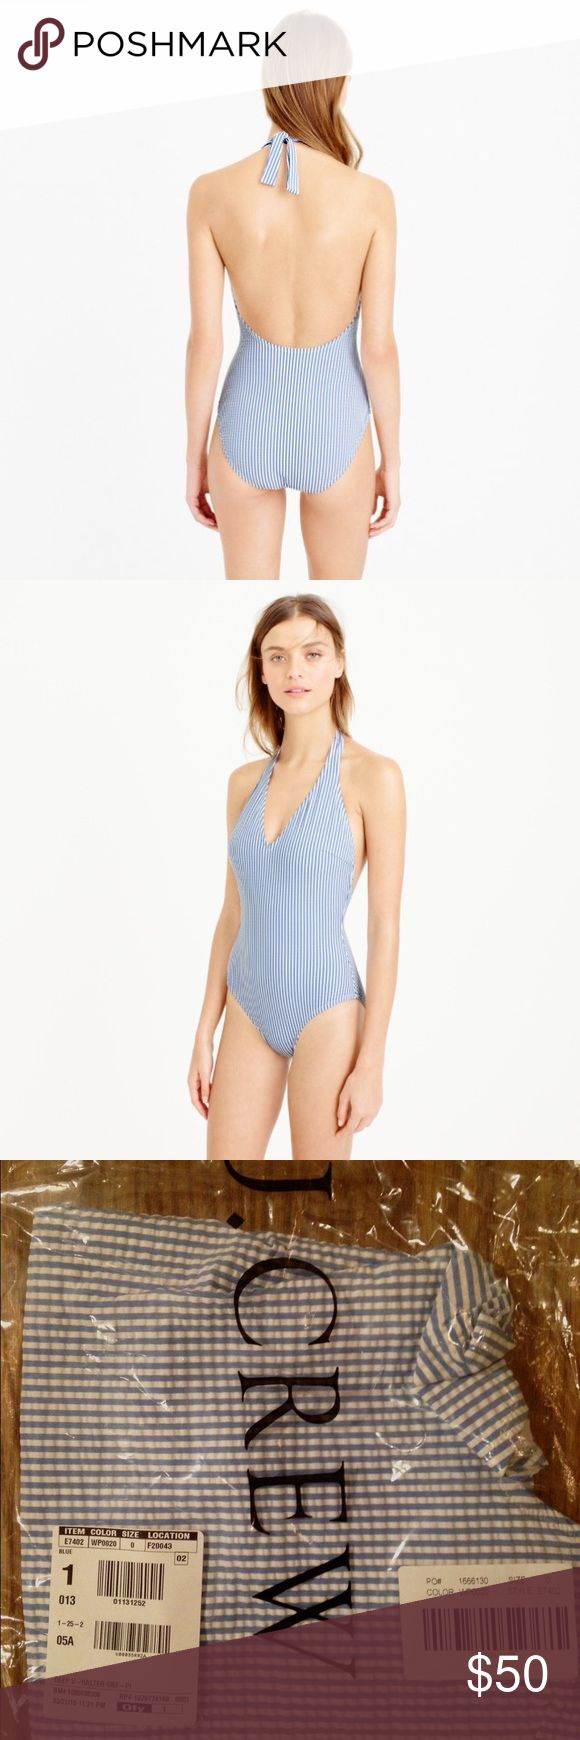 J. Crew seersucker halter piece swimsuit NWT Preppy blue and white stripe one piece. Classic and flattering! The v-neck and low back keeps it a little sexy:) it has all the original packaging/ tag attached. I didn't keep it because I ordered two and forgot to return one in time. size 0. Fits true to size. J. Crew Swim One Pieces